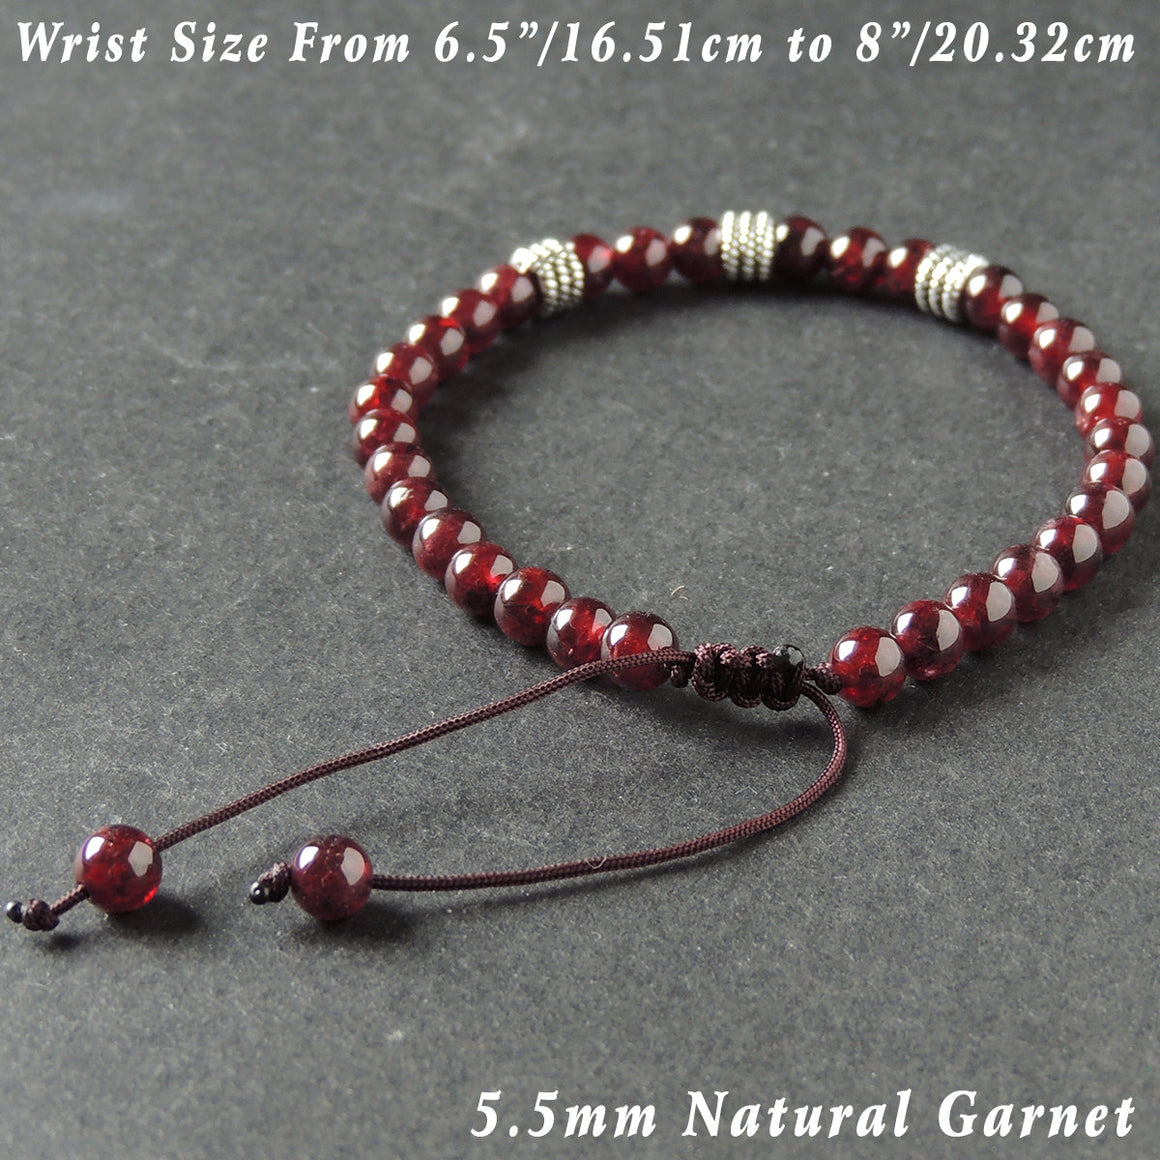 5.5mm Garnet Adjustable Braided Bracelet with S925 Sterling Silver Textured Wheel Charms - Handmade by Gem & Silver BR997